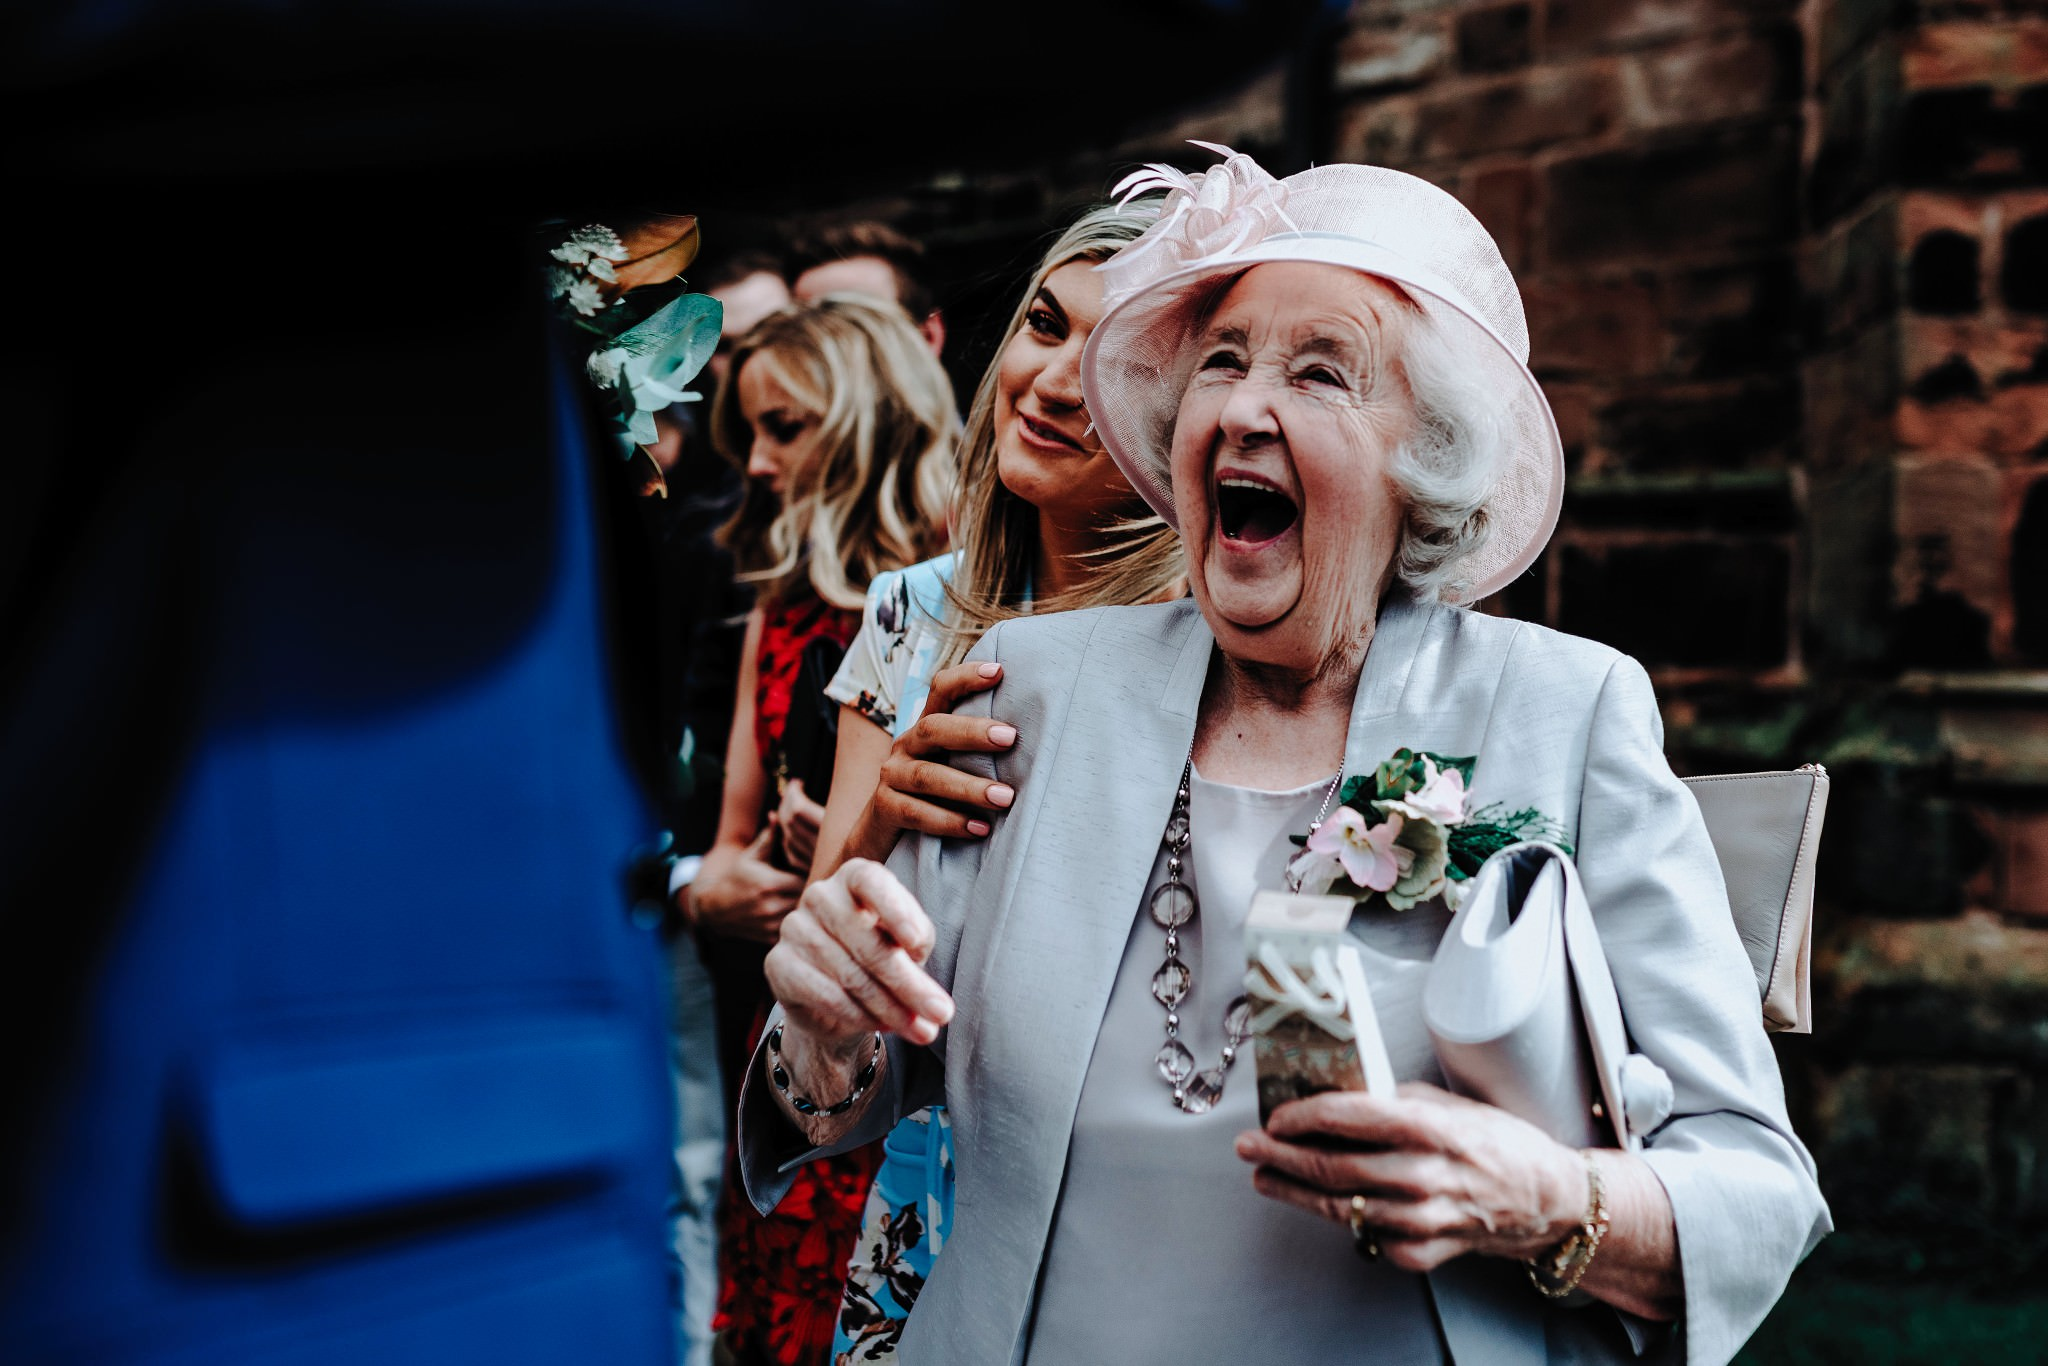 Nan smiling and excited at Cheshire Barn Wedding